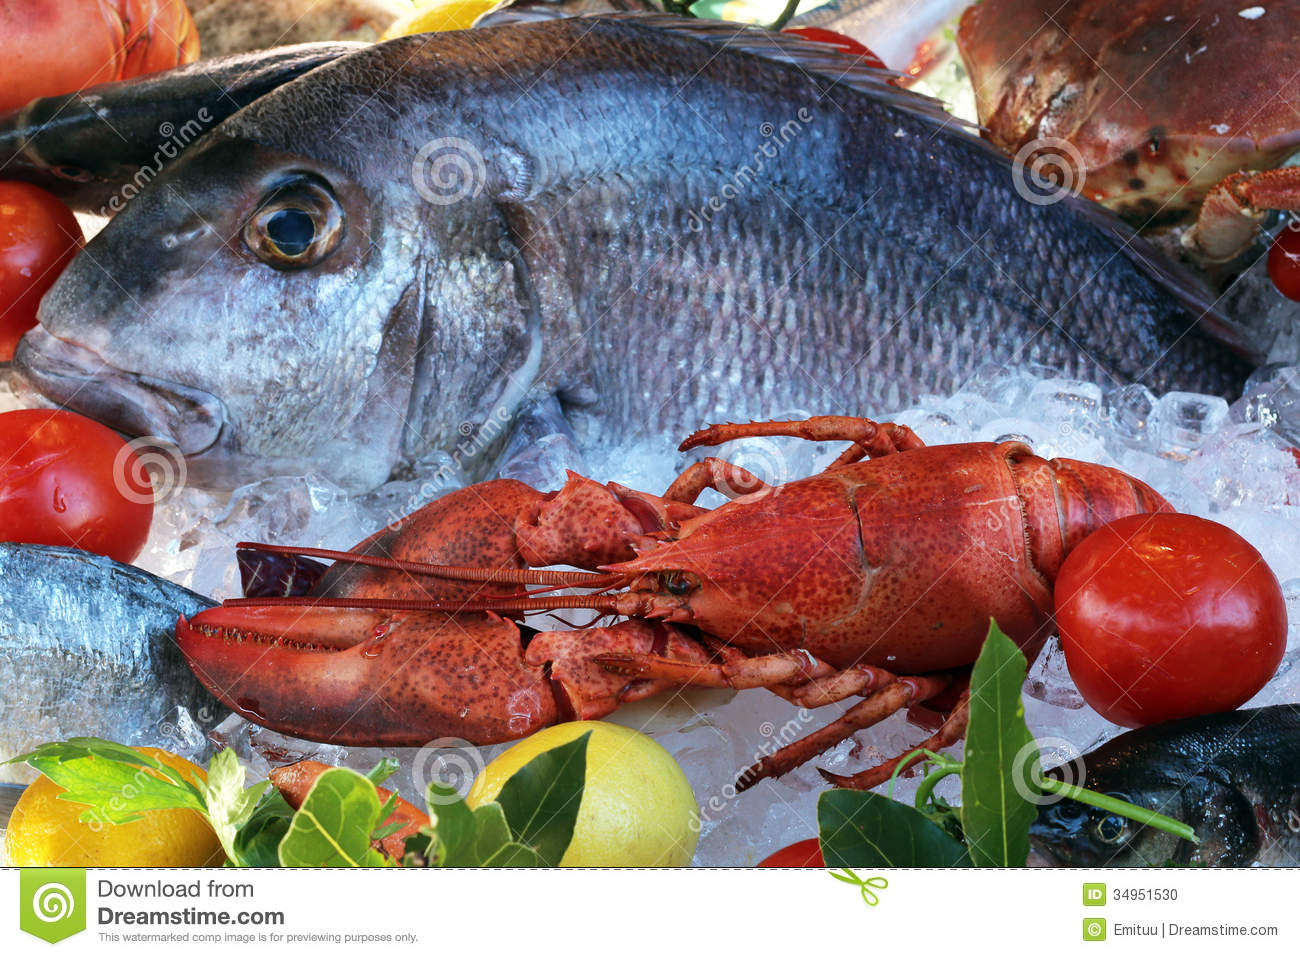 Lobster and Fish stock photo. Image of craps, lobster - 34951530